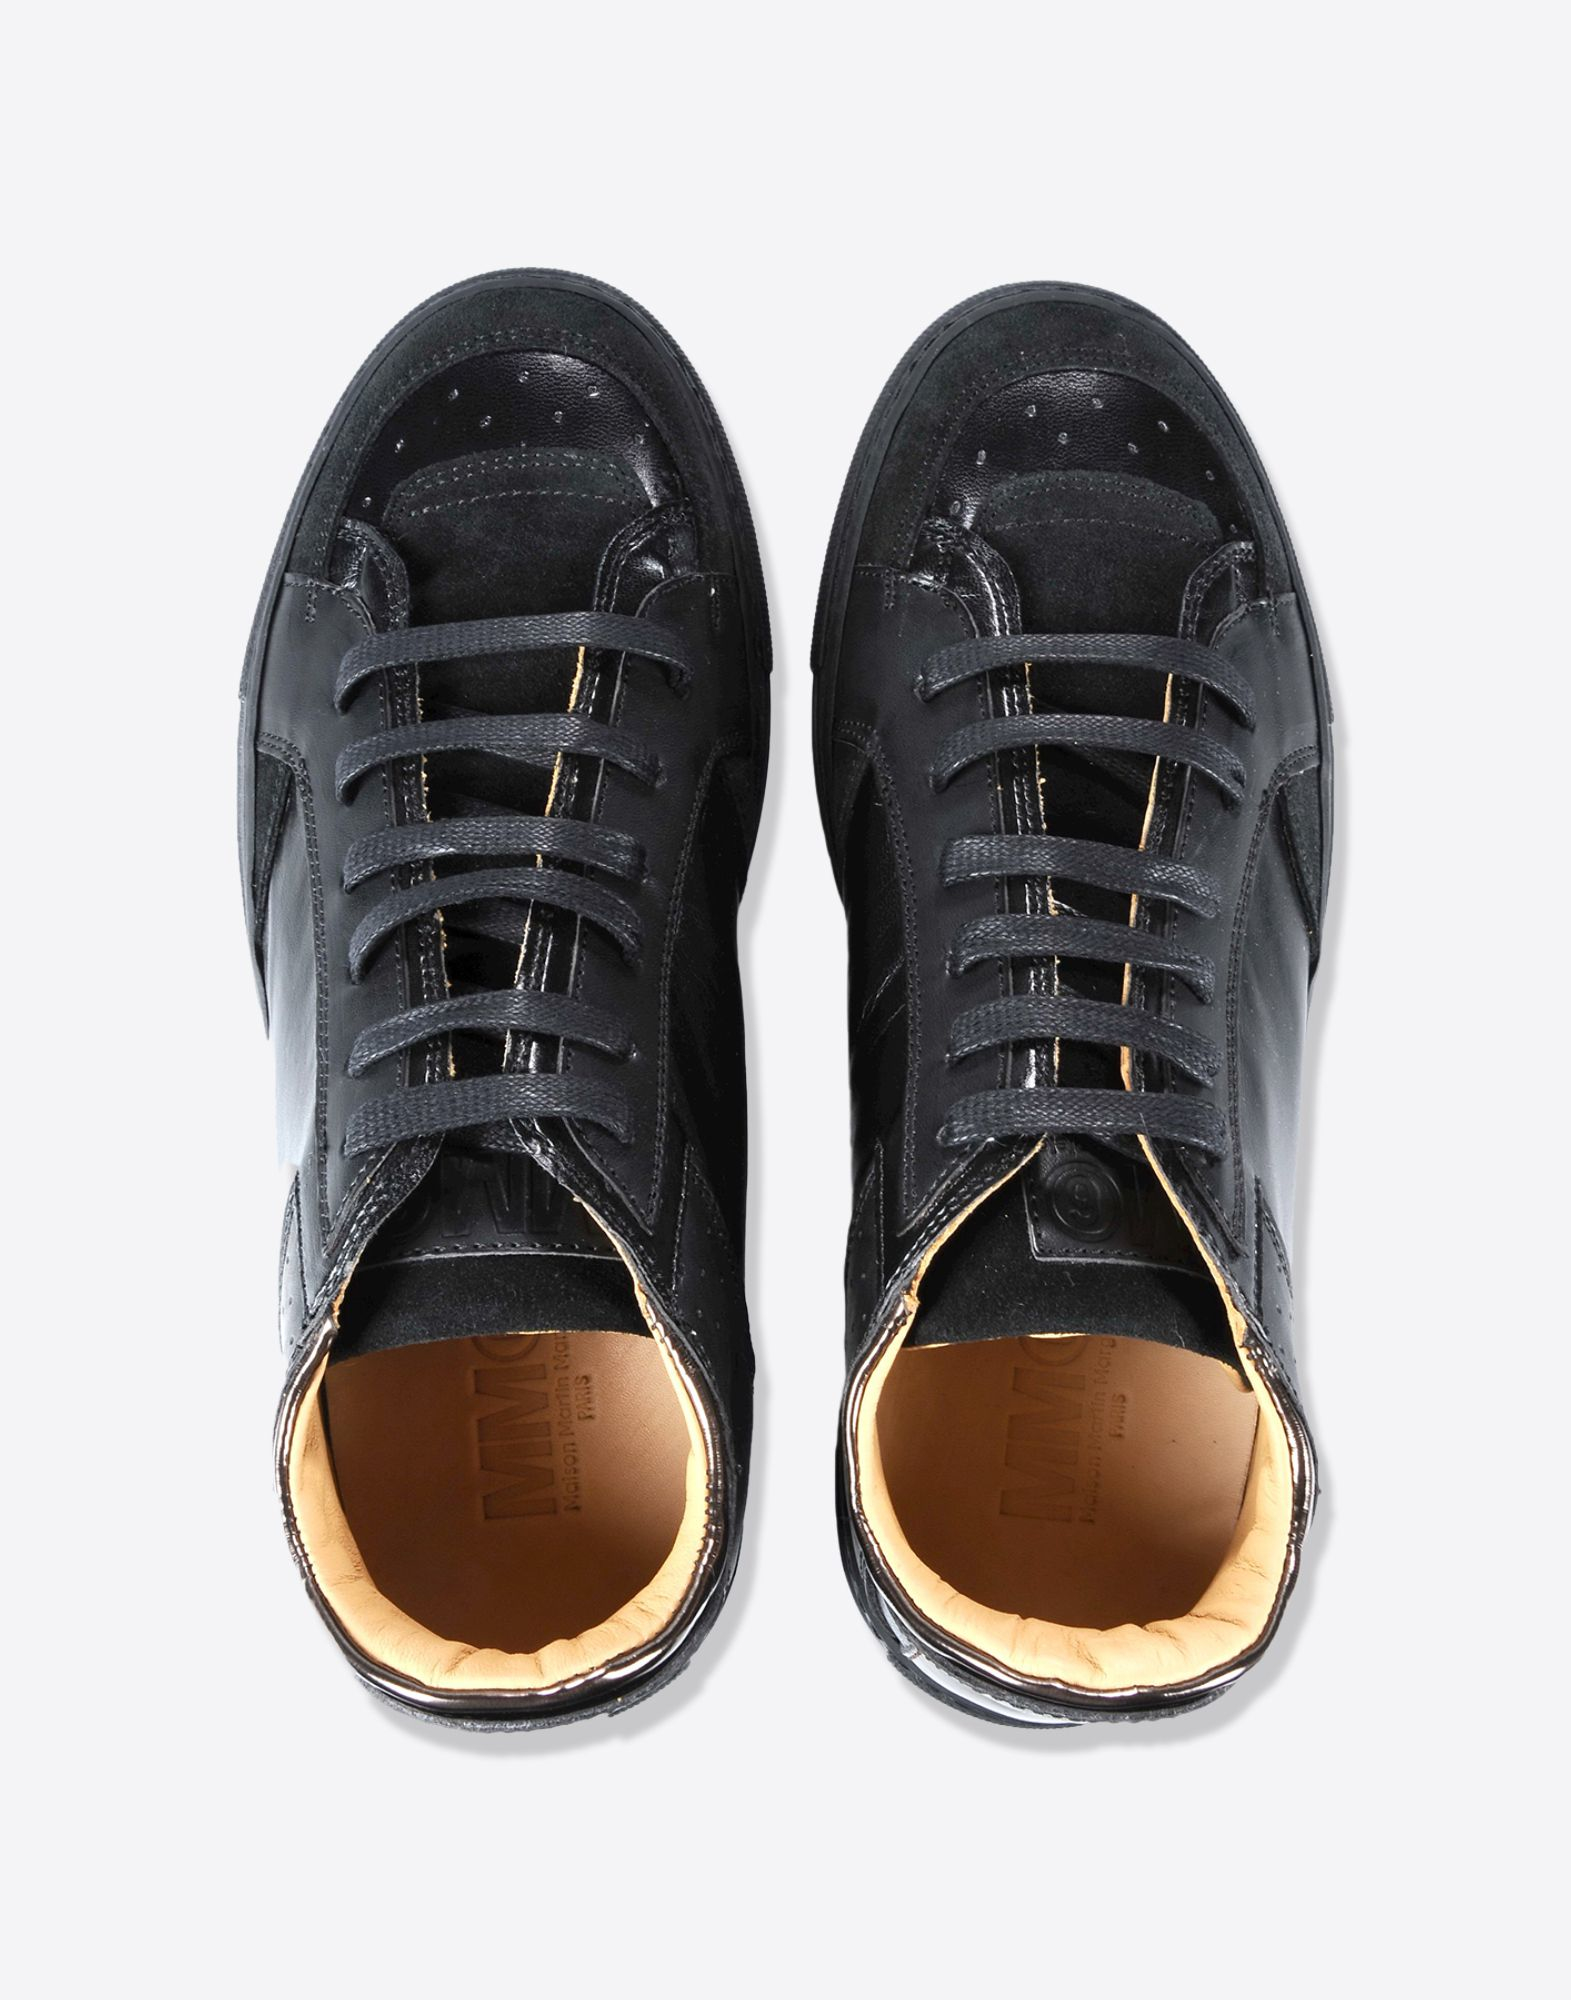 MM6 by Maison Martin Margiela Synthetic Classic Low Top Sneakers in Black